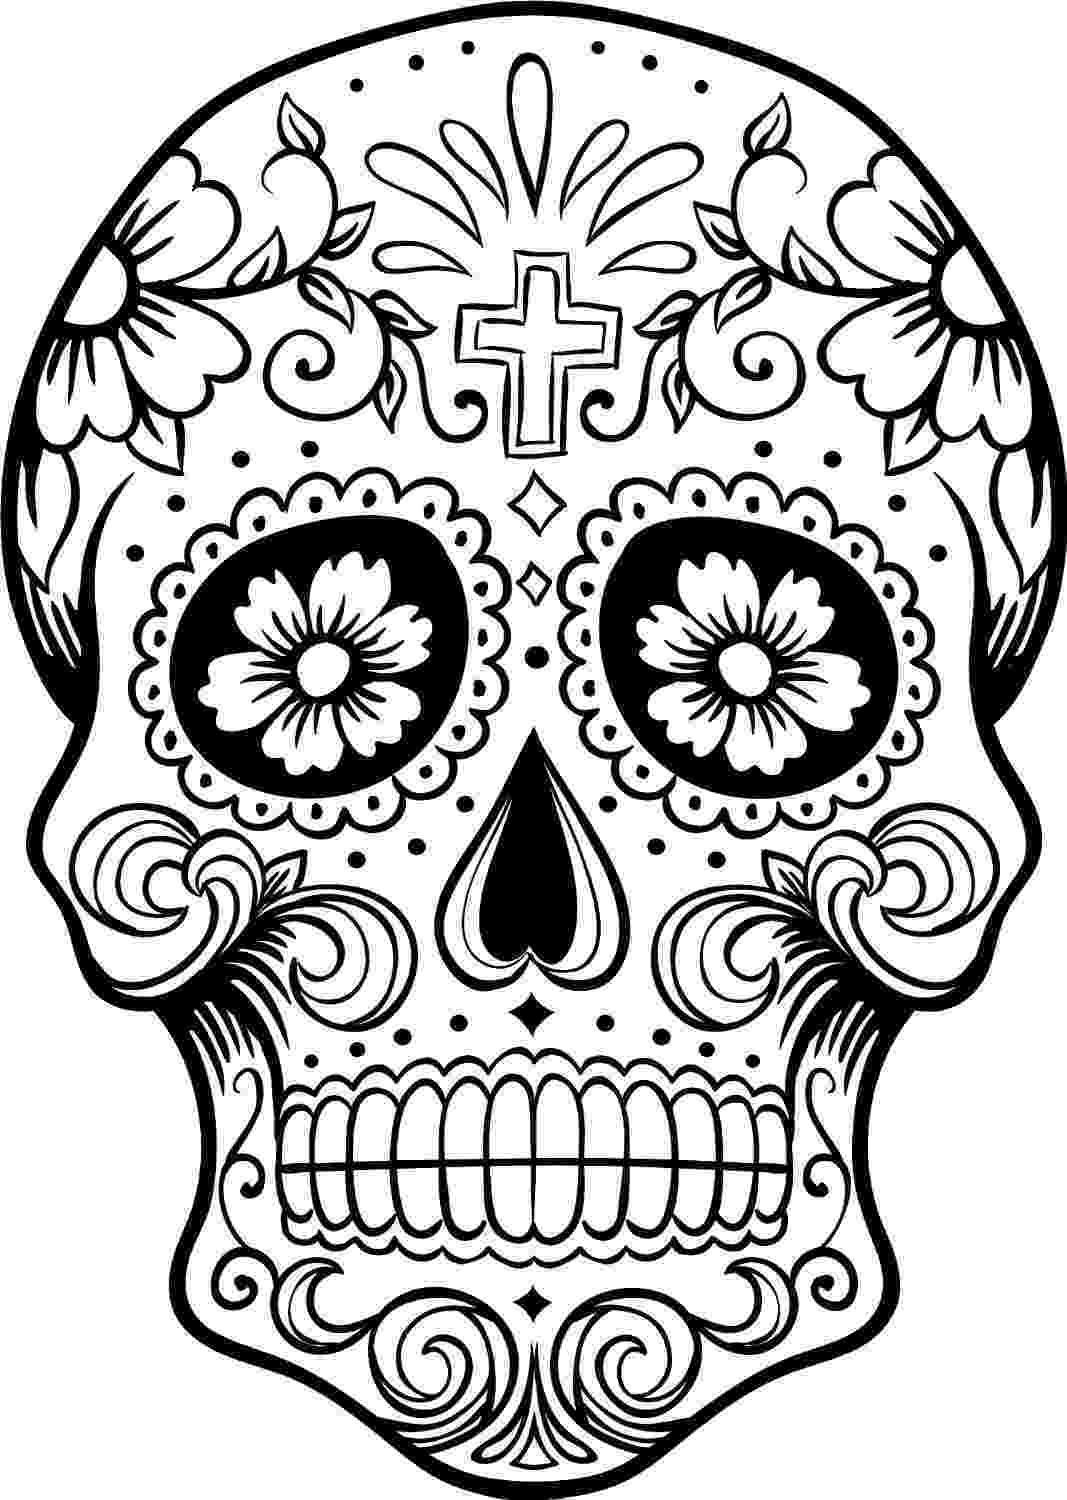 day of the dead coloring skulls free printable day of the dead coloring pages best coloring skulls day the dead of